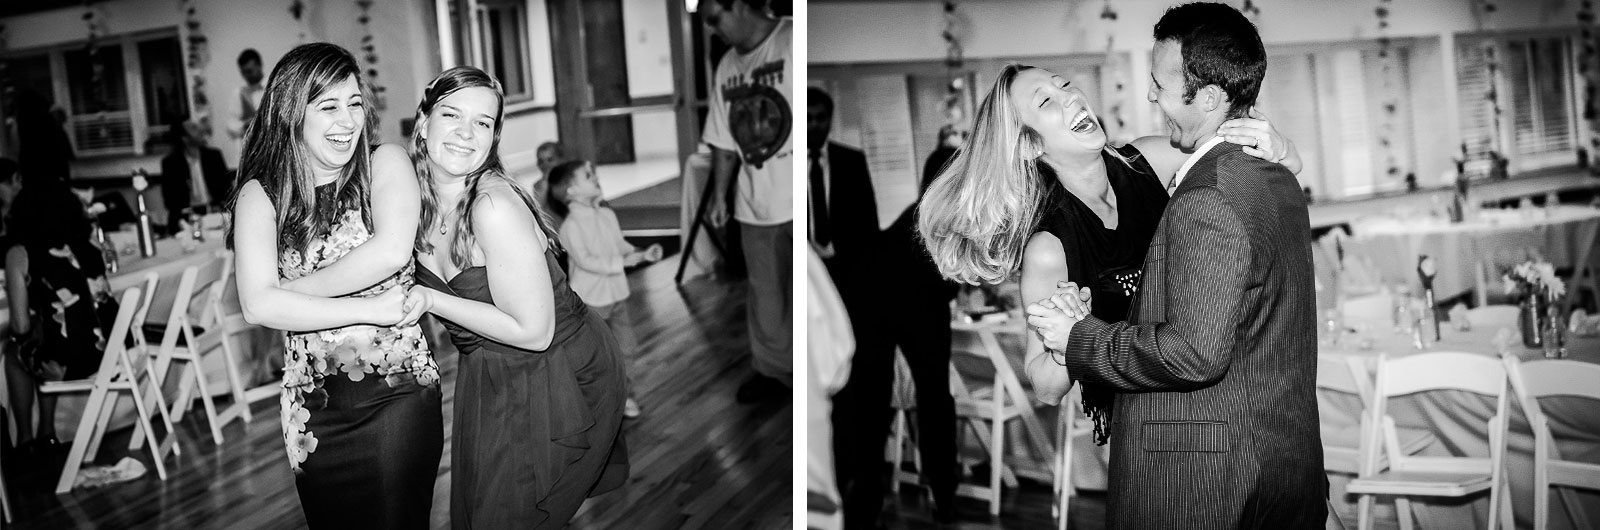 Eric_and_Christy_Photography_Blog_Katie_Travis_Wedding-67-68